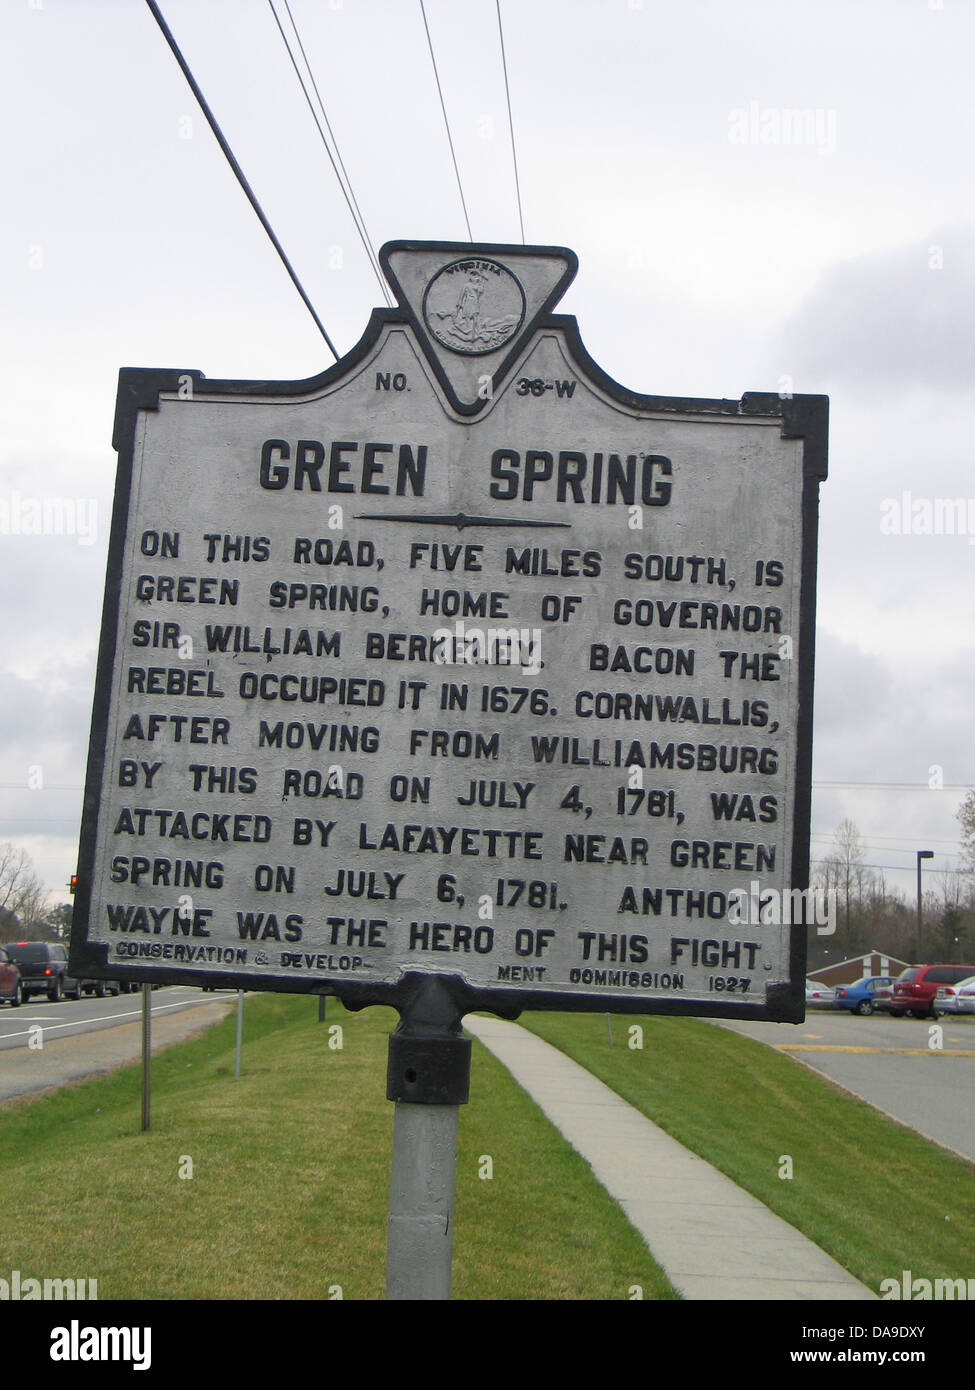 GREEN SPRING On this road, five miles south, is Green Spring, home of Governor Sir William Berkeley. Bacon the Rebel Stock Photo